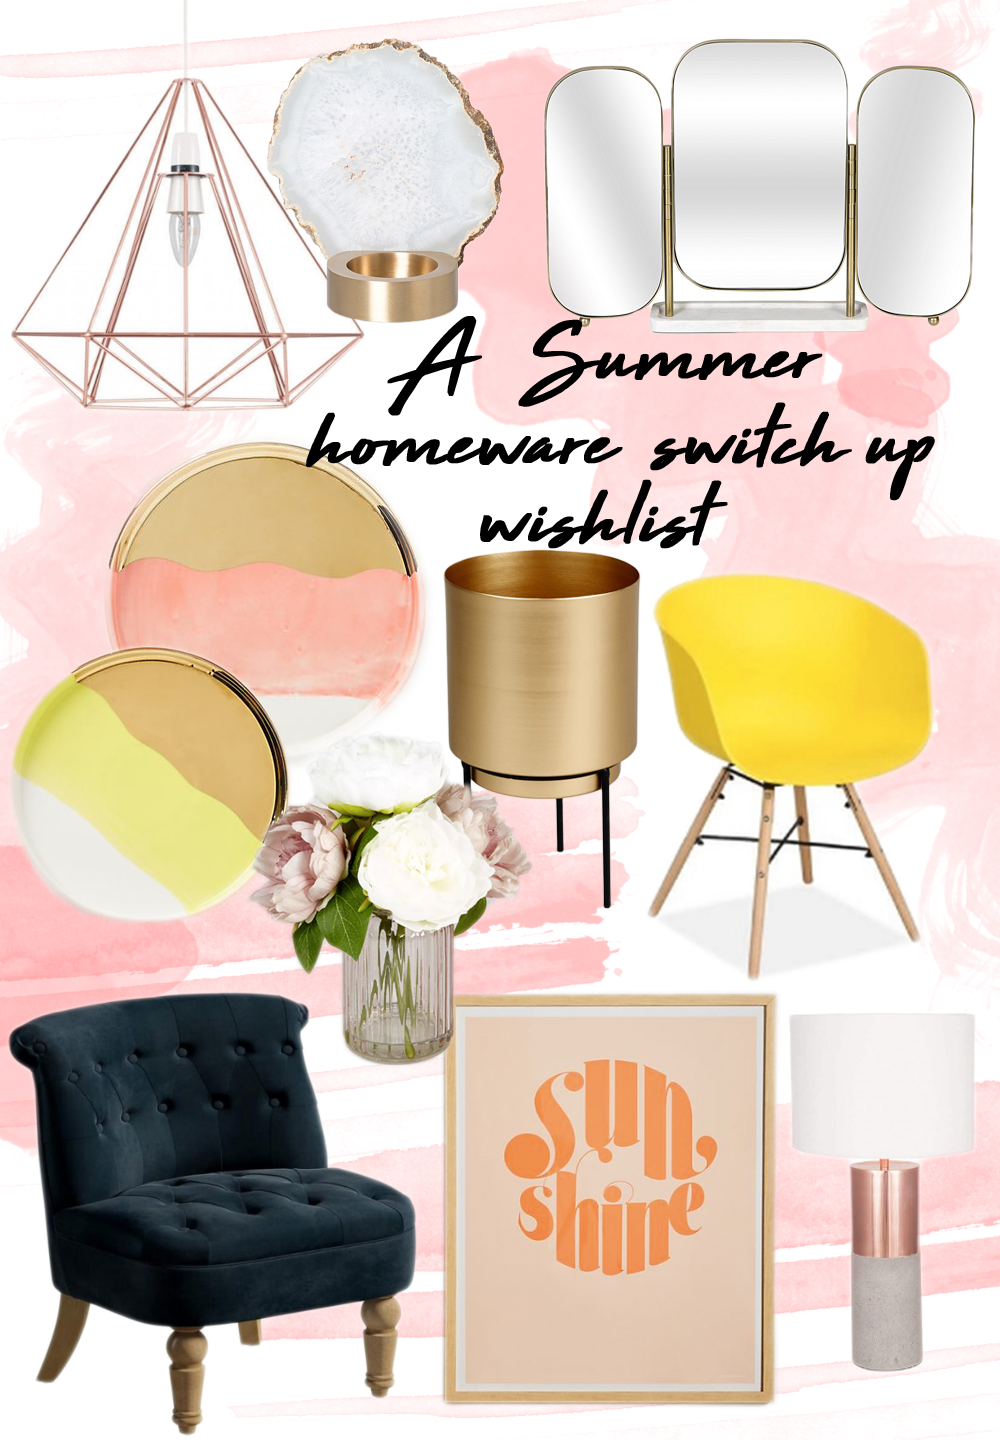 A summer homeware switch-up wishlist // LUCY-COLE